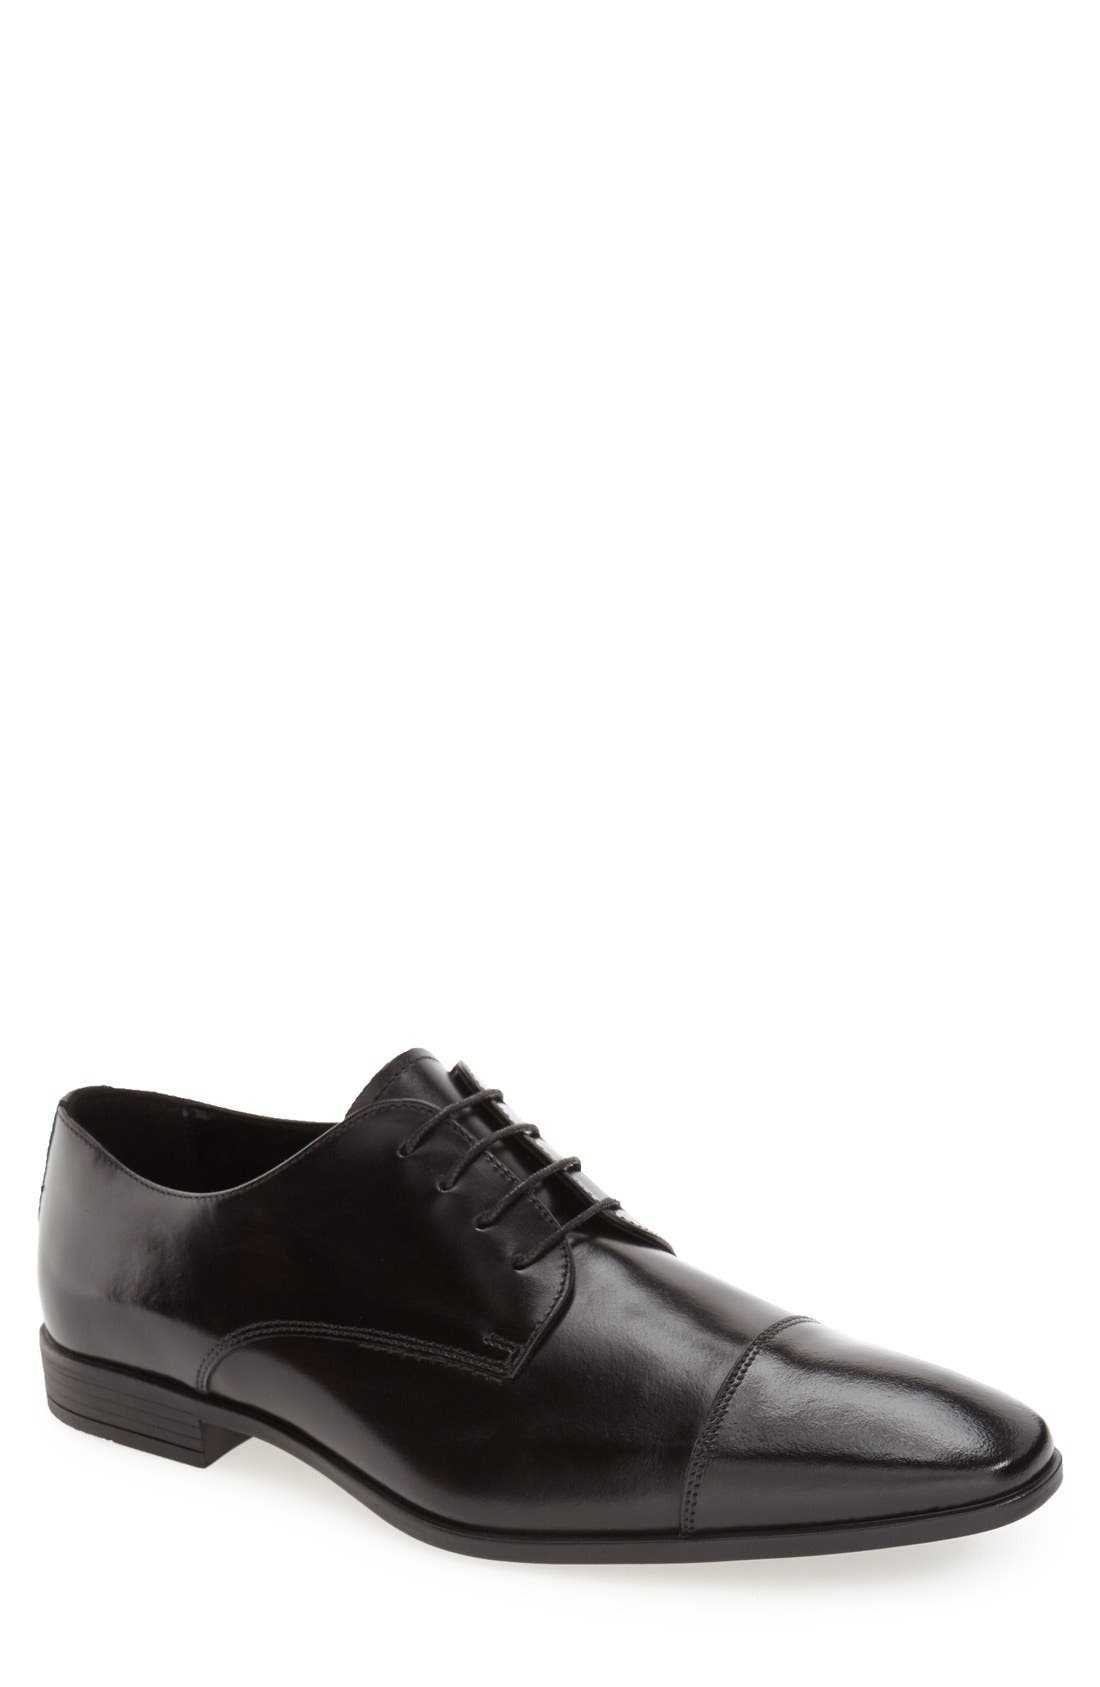 'Stark' Cap Toe Derby, Main, color, BLACK LEATHER